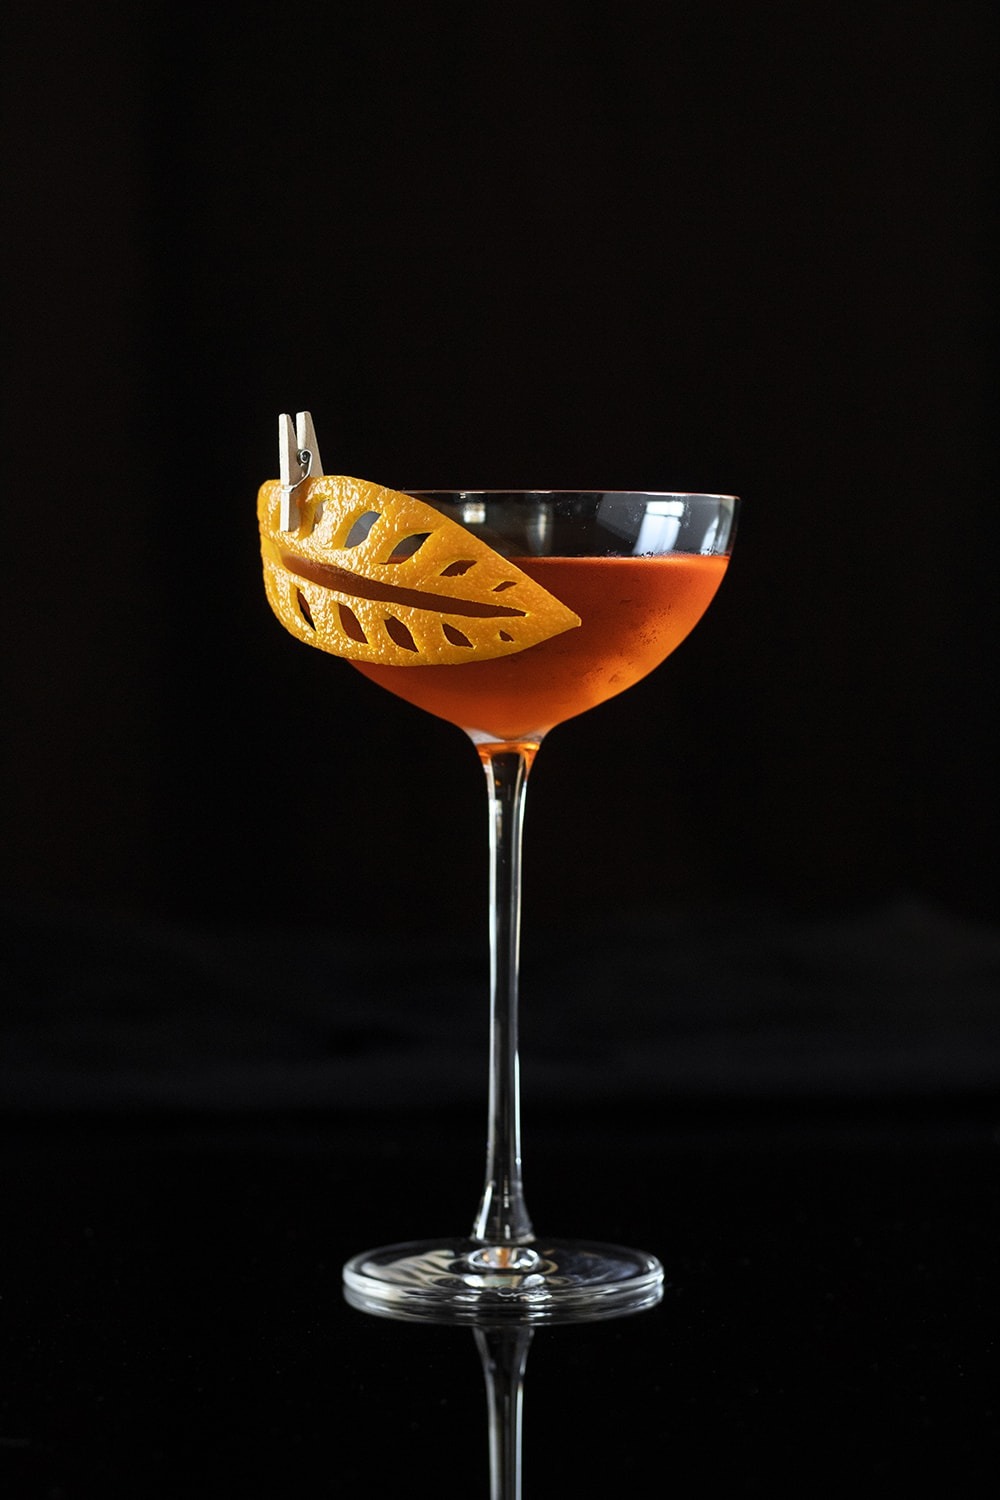 sunset strip cocktail with carved citrus peel garnish